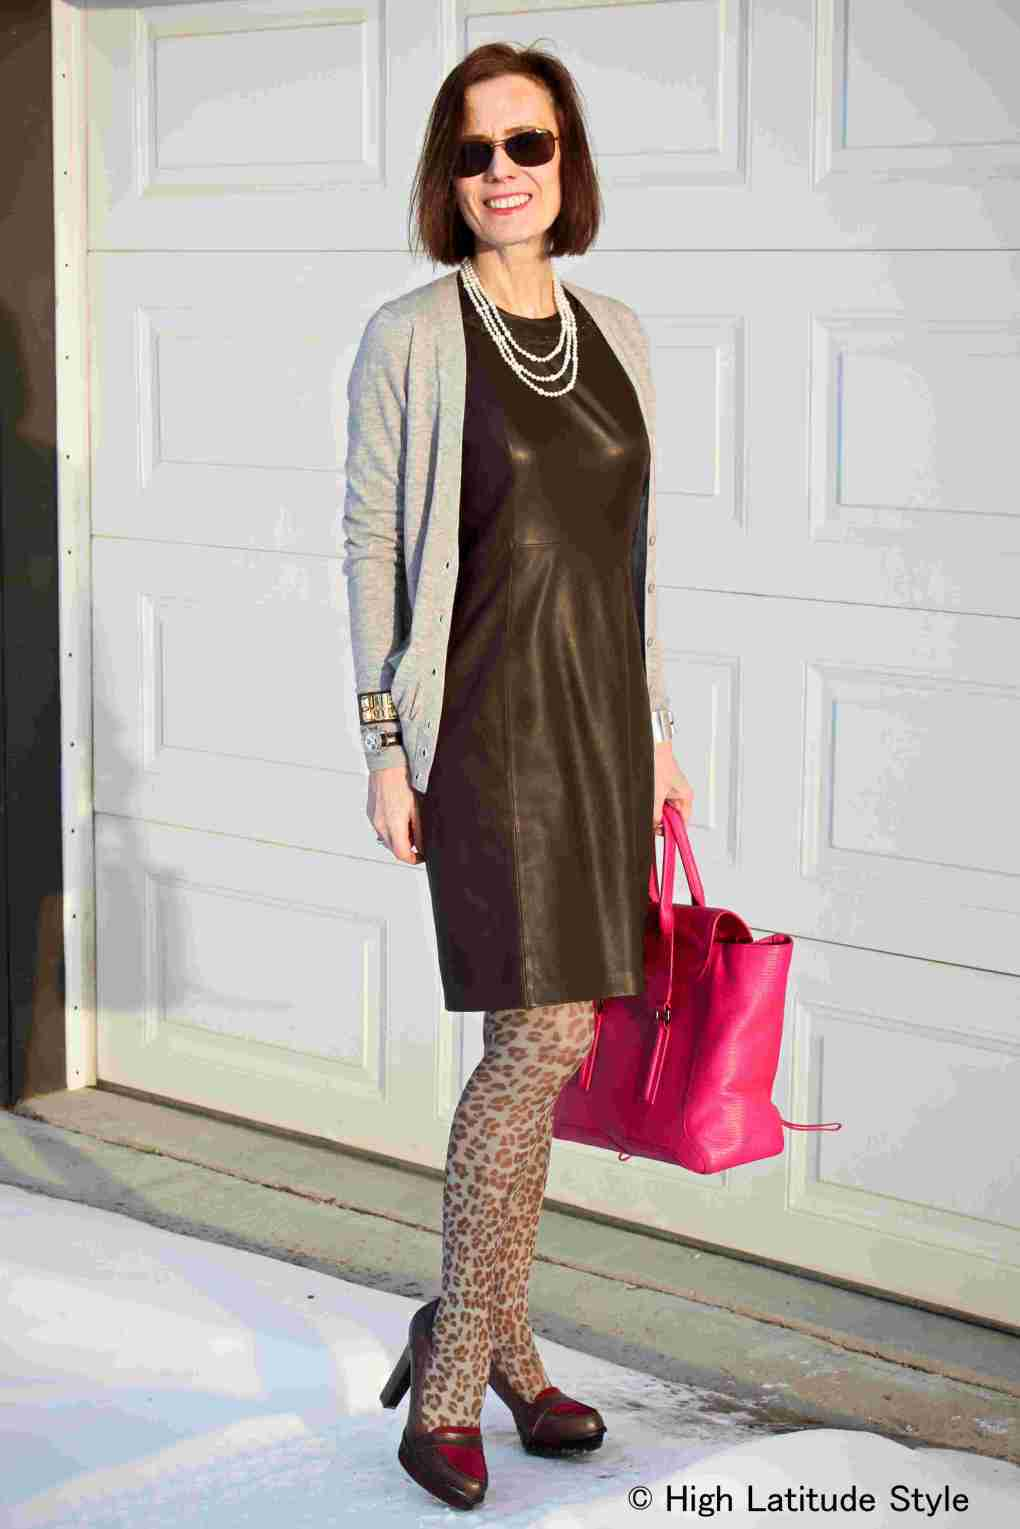 #fashionover40 woman in leather sheath